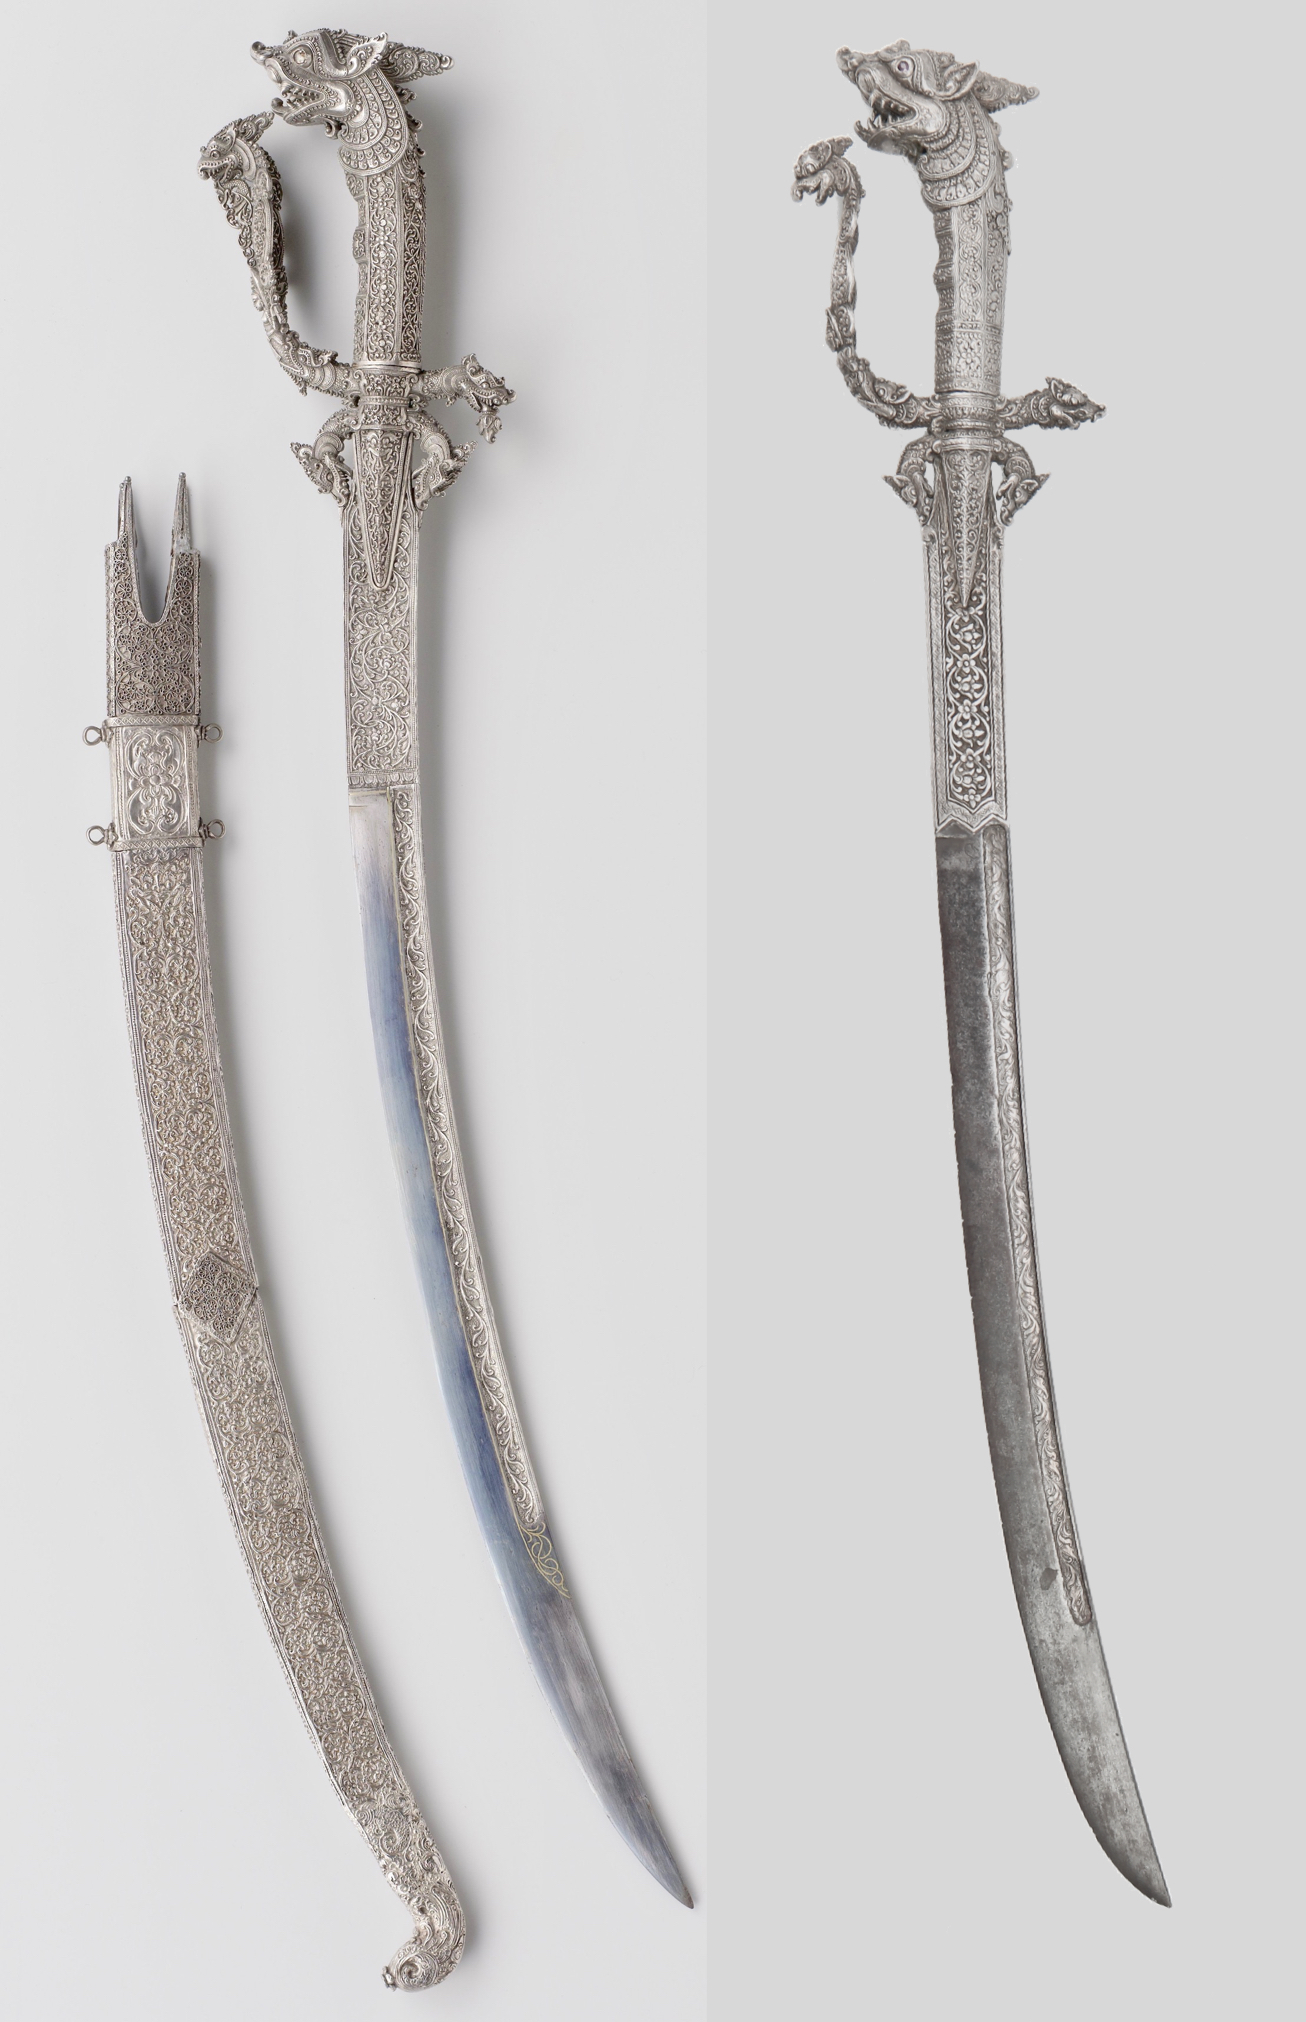 Two silver clad kasthane. One in the Rijksmuseum in Amsterdam, the other sold by Mandarin Mansion.